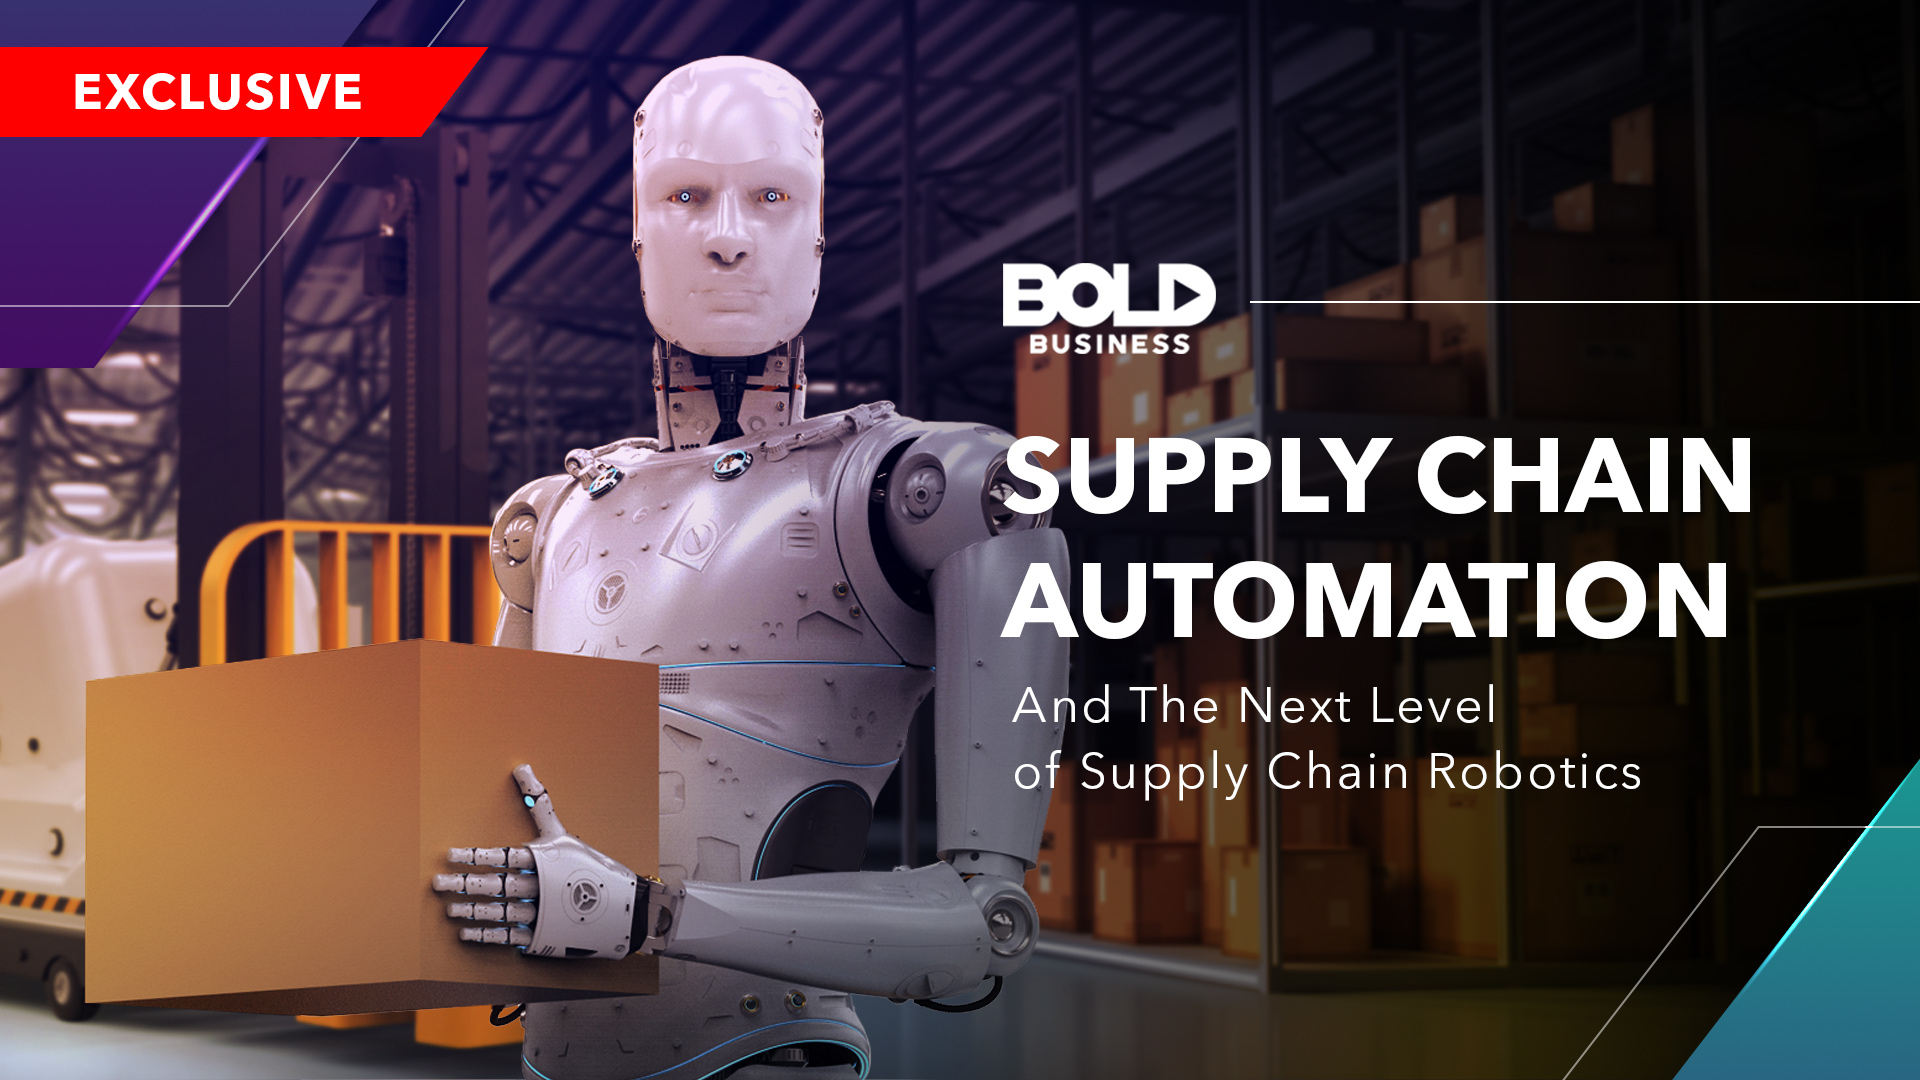 The 4th Industrial Revolution: Supply Chain Automation